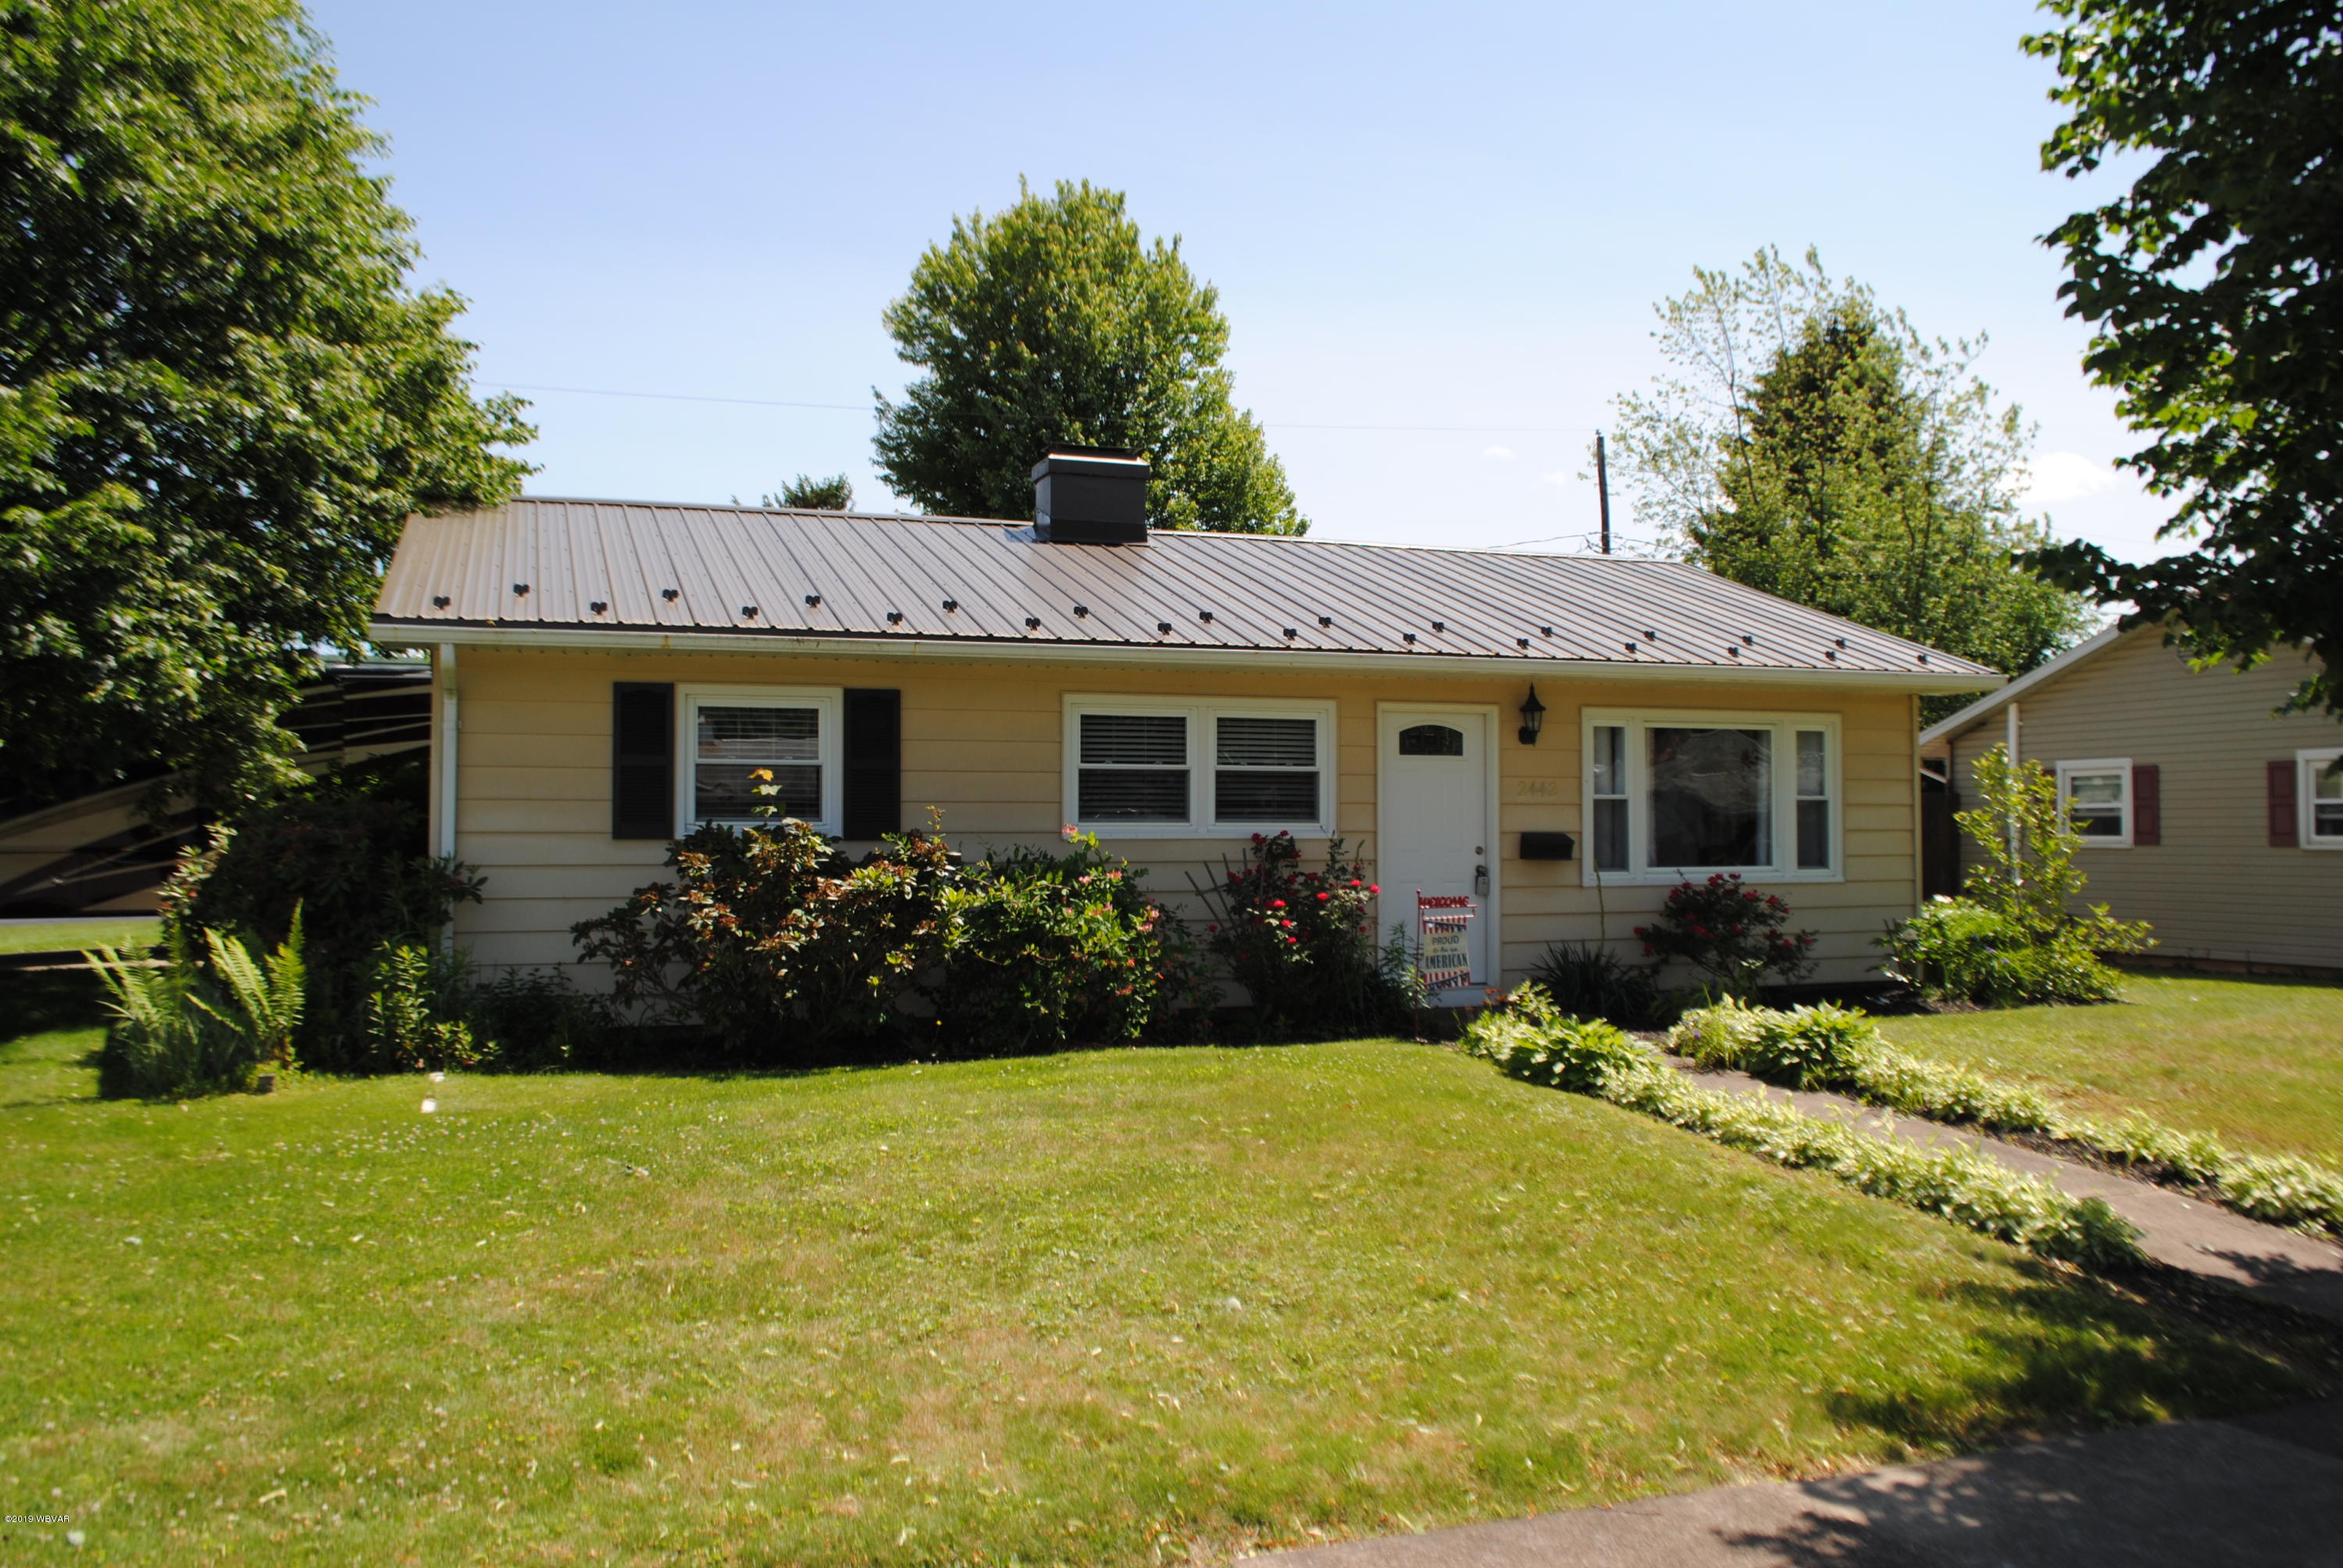 2442 RITCHEY STREET,Williamsport,PA 17701,3 Bedrooms Bedrooms,1 BathroomBathrooms,Residential,RITCHEY,WB-87538